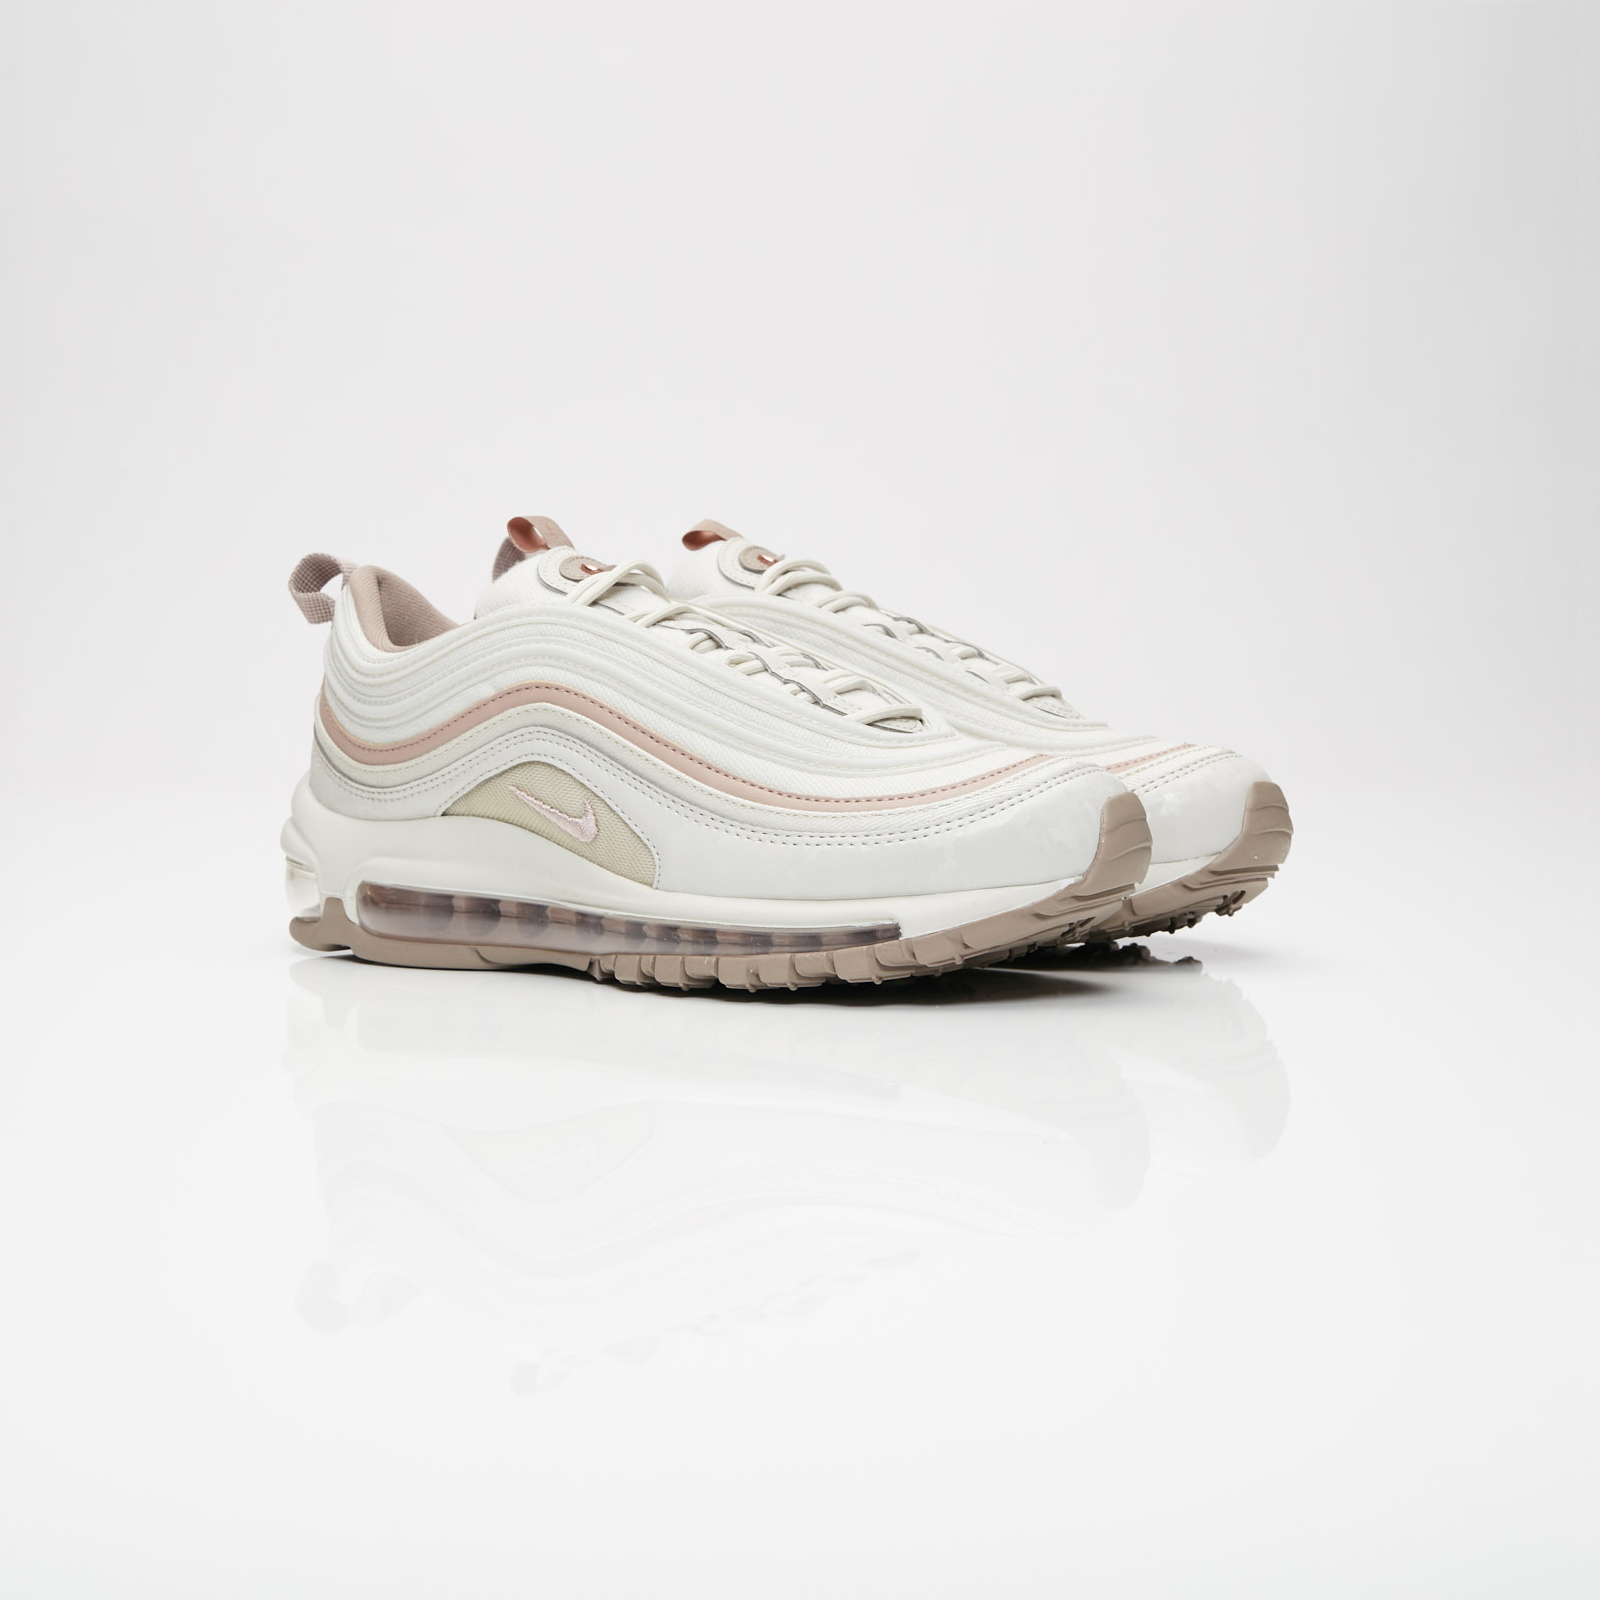 quality design 2f930 aaf17 Nike Wmns Air Max 97 Premium Light Bone